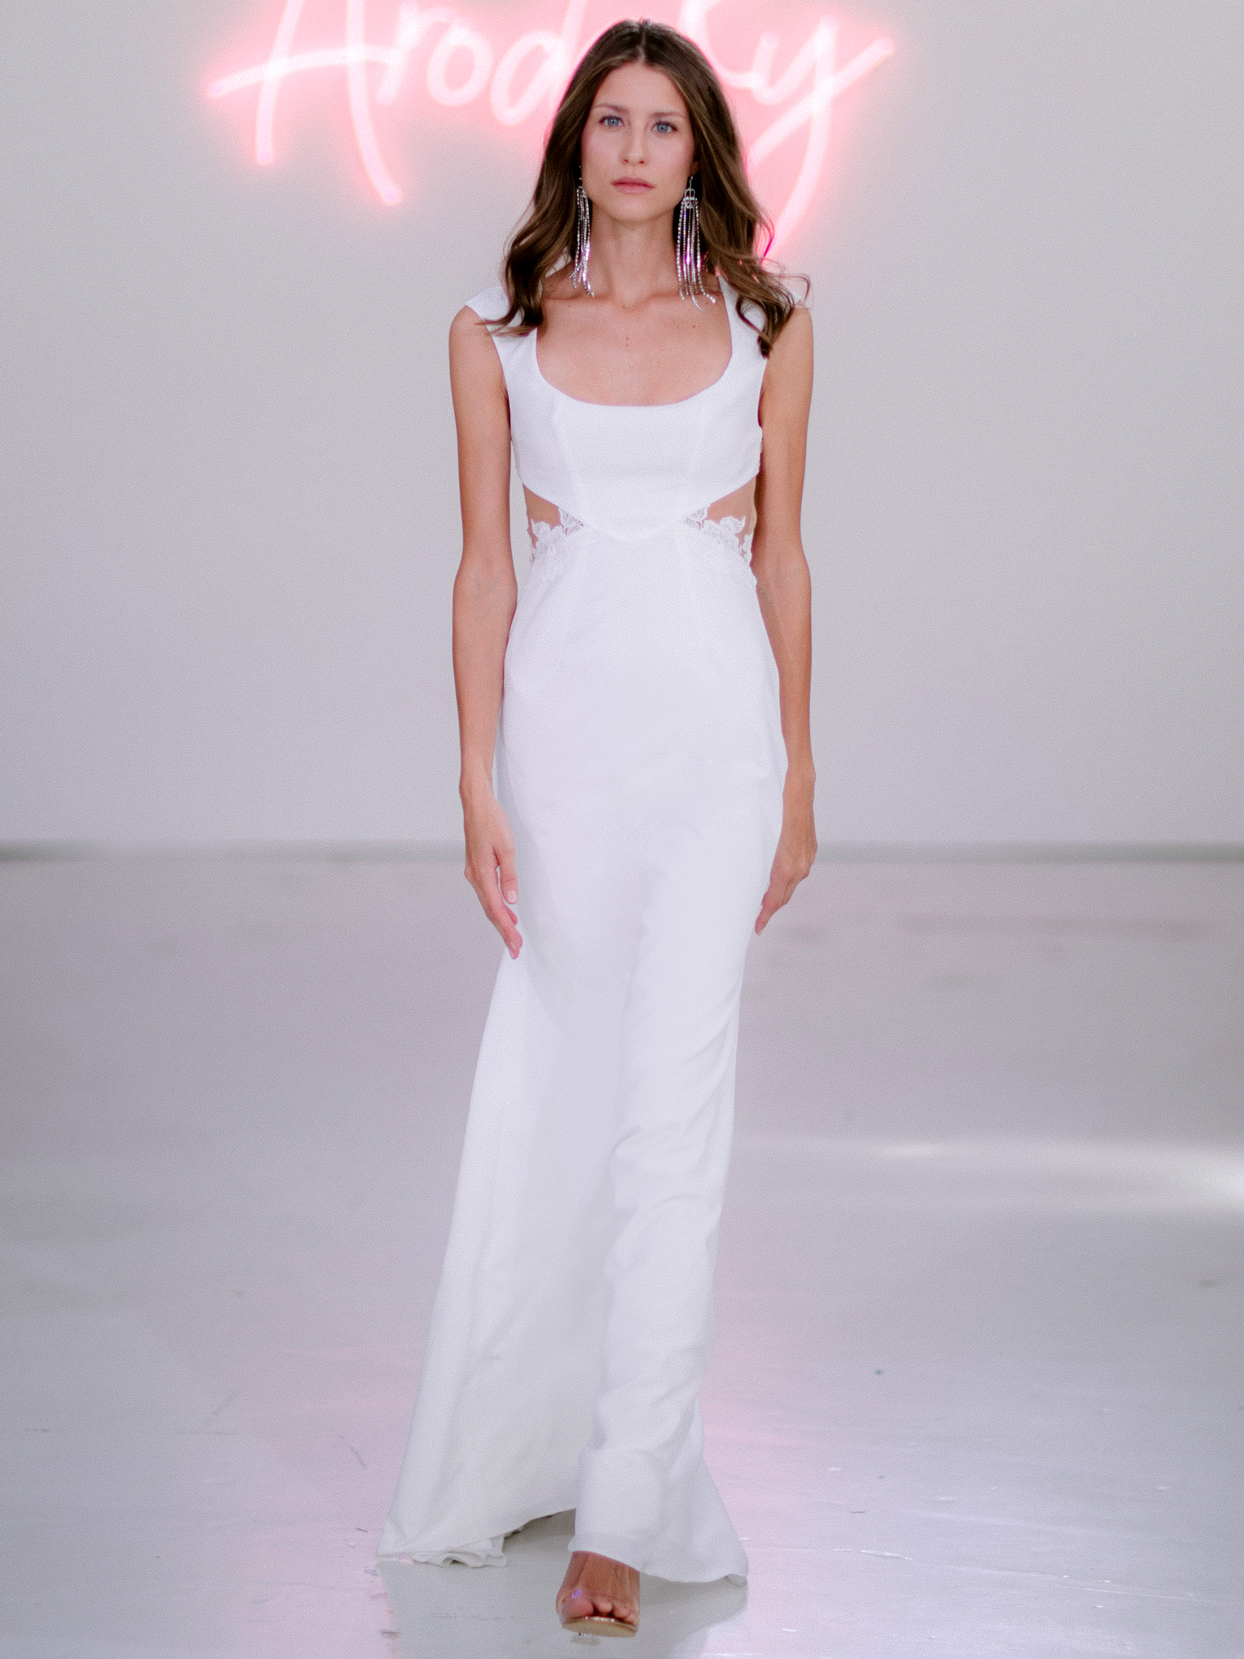 Rime Arodaky X The Mews Bridal side cut-outs sleeveless wedding dress fall 2020